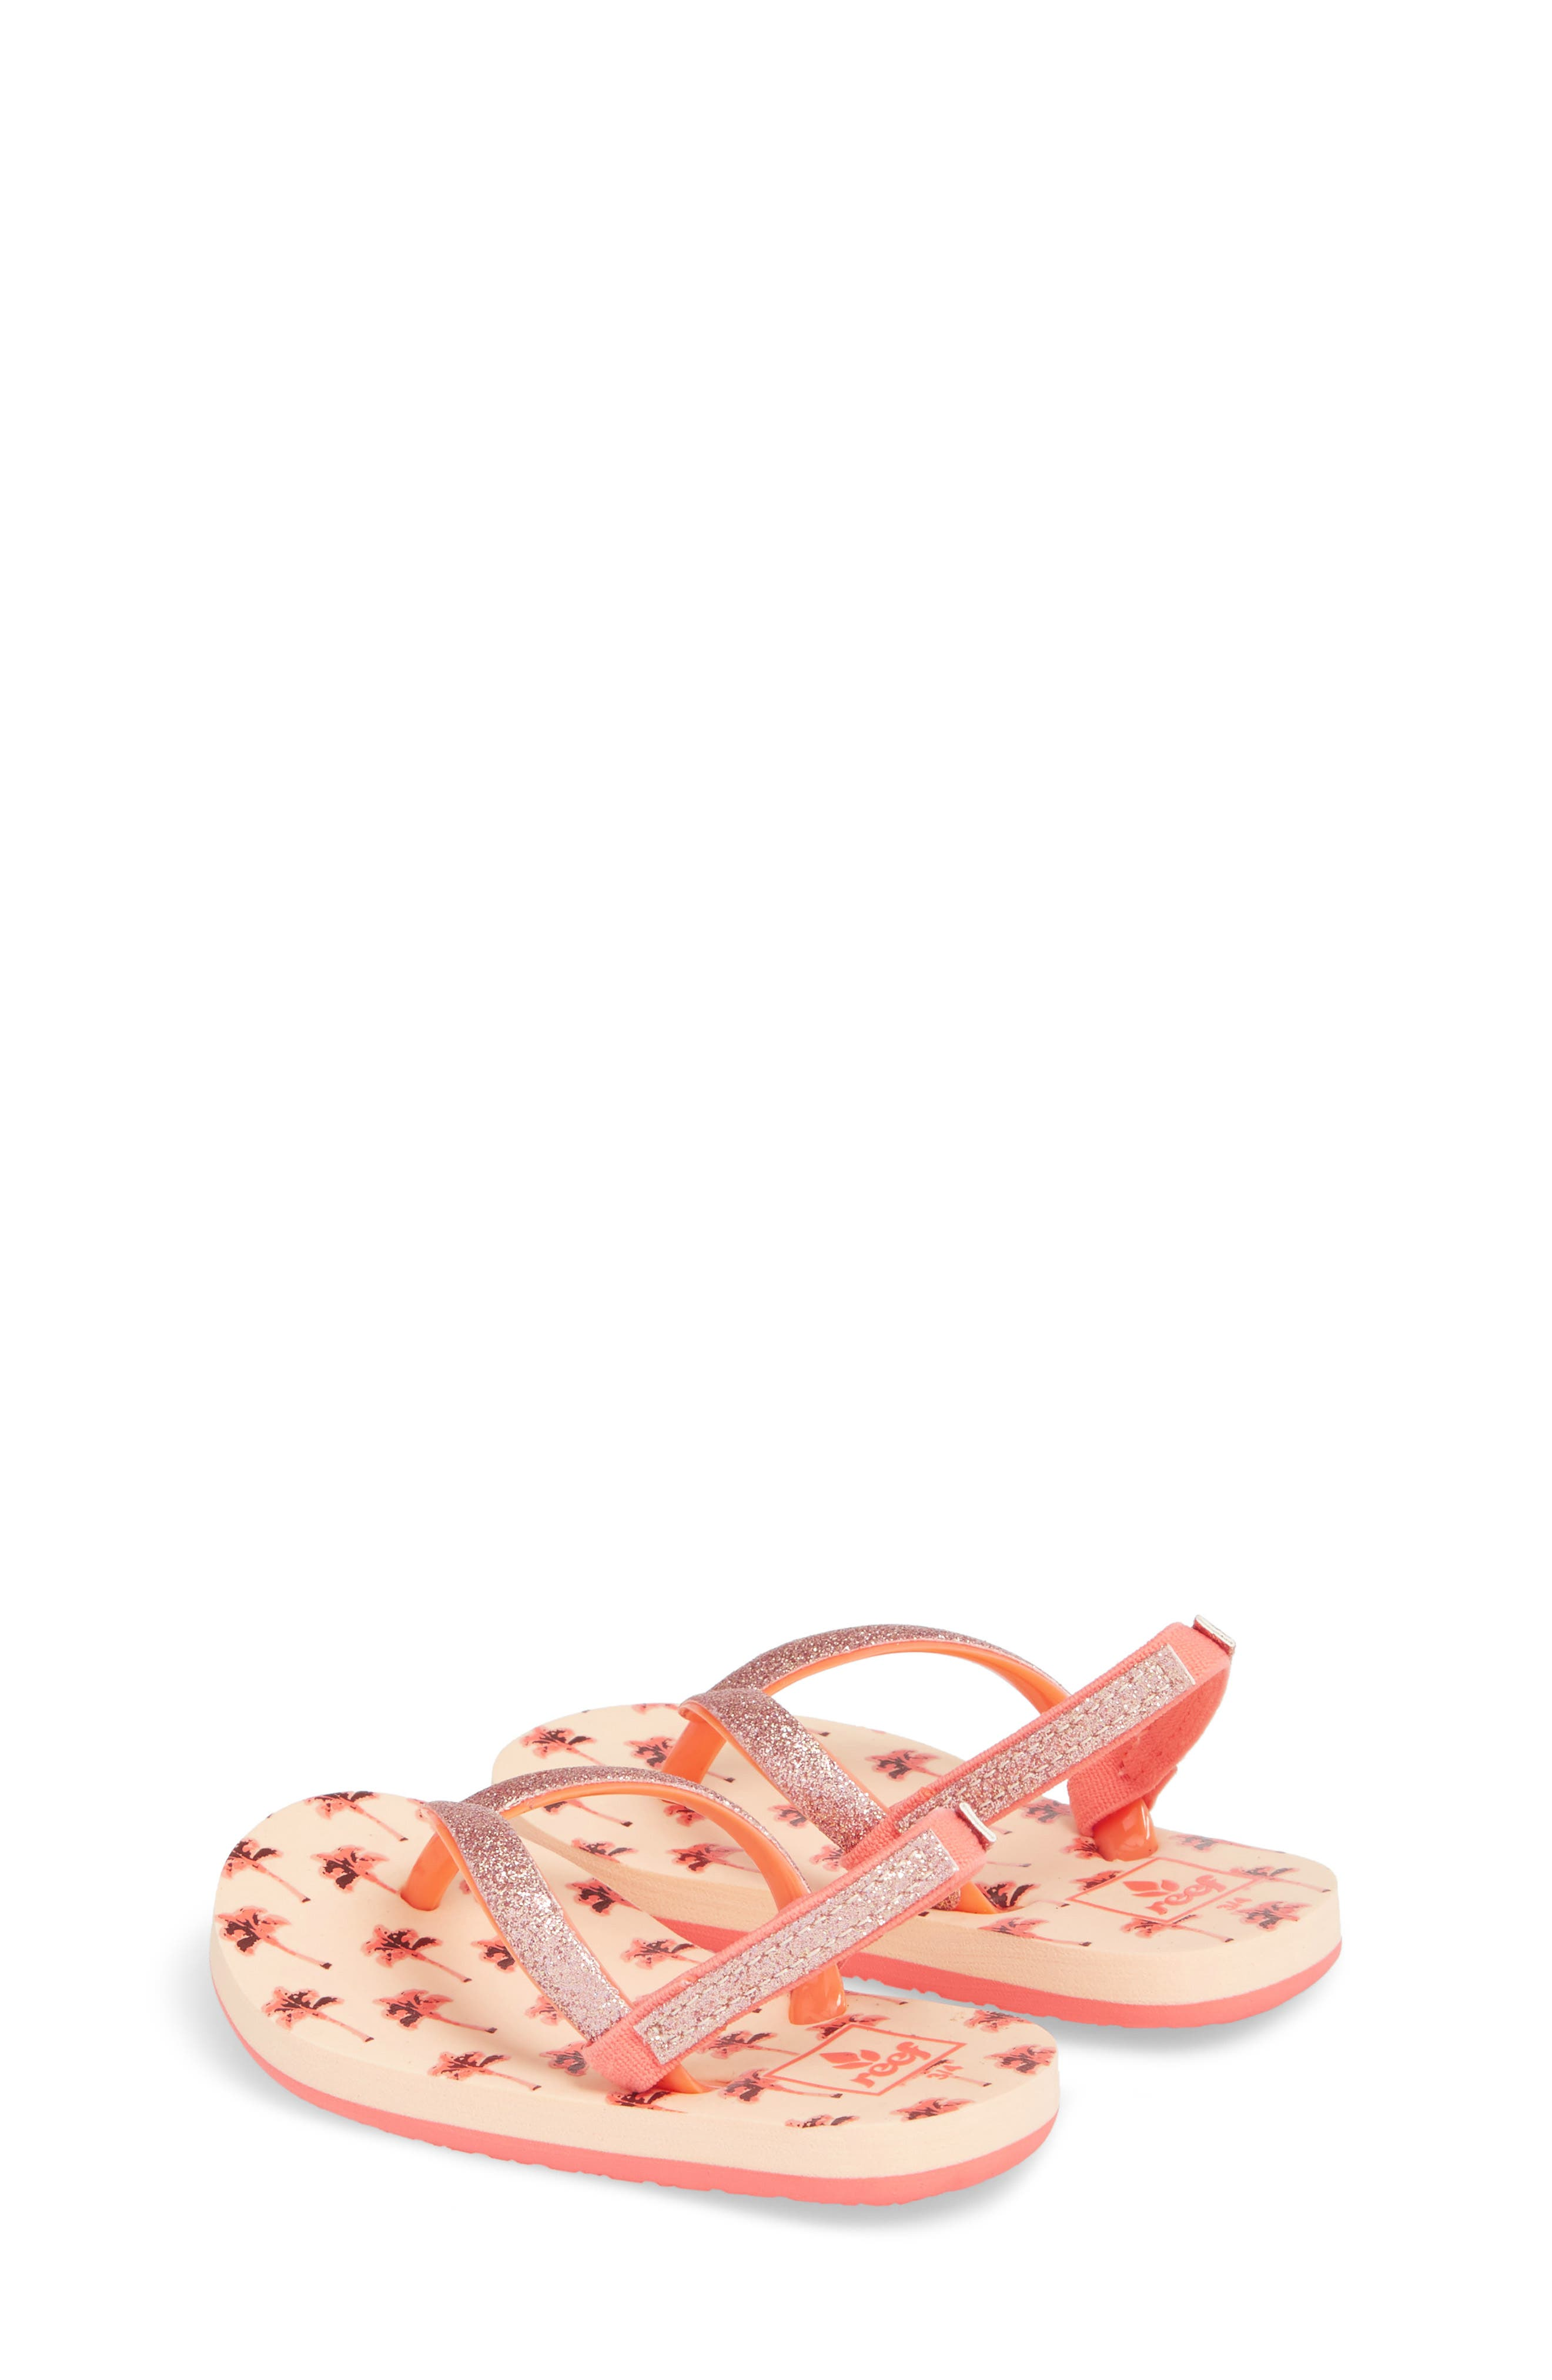 Little Stargazer Print Flip Flop,                             Alternate thumbnail 2, color,                             Orange